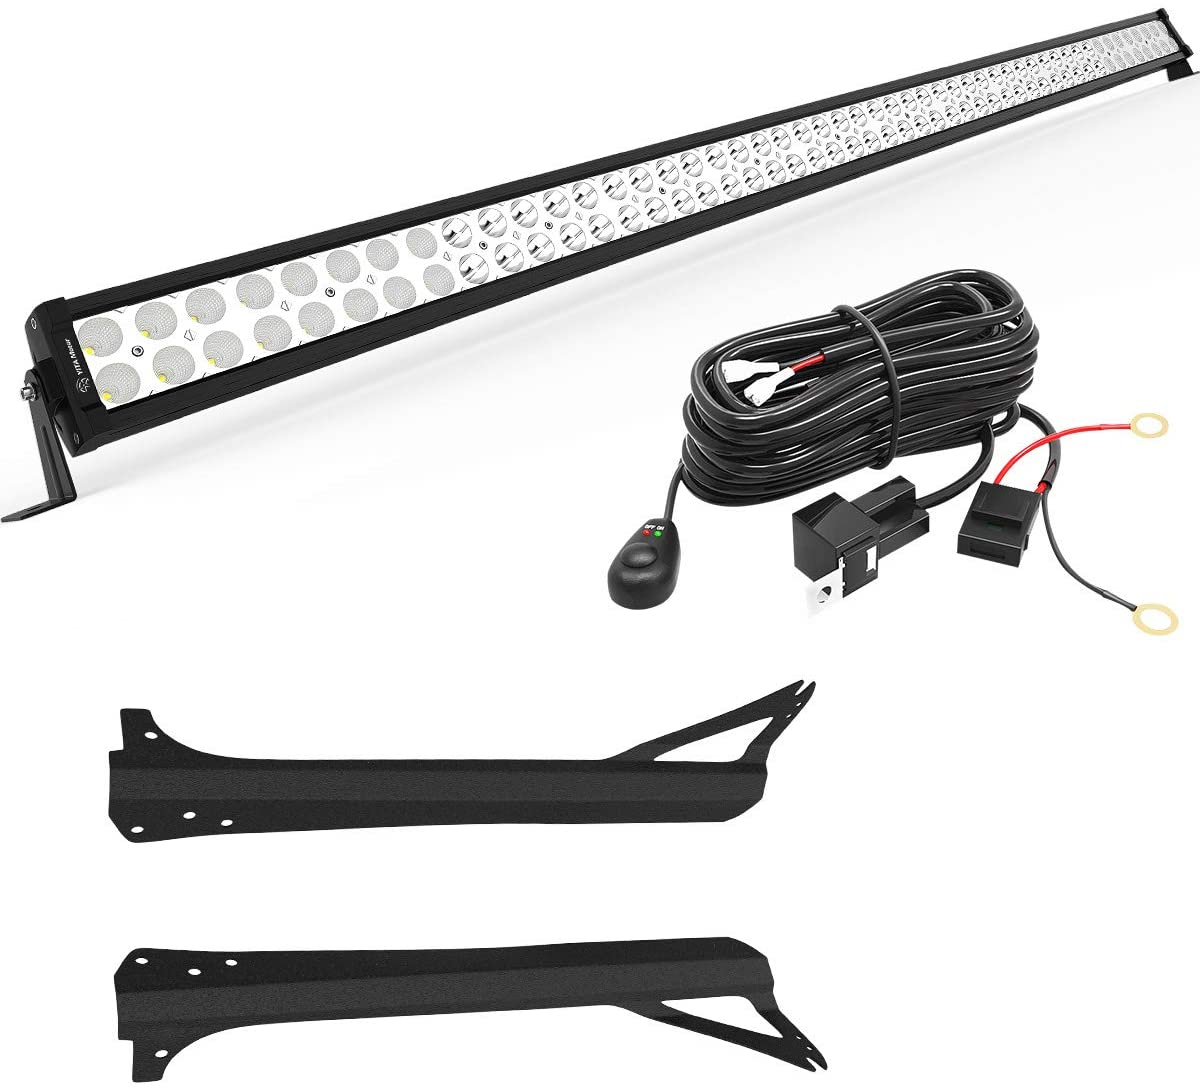 YITAMOTOR LED Light Bar 52 inches Light Bar Compatible for 1997-2006 on